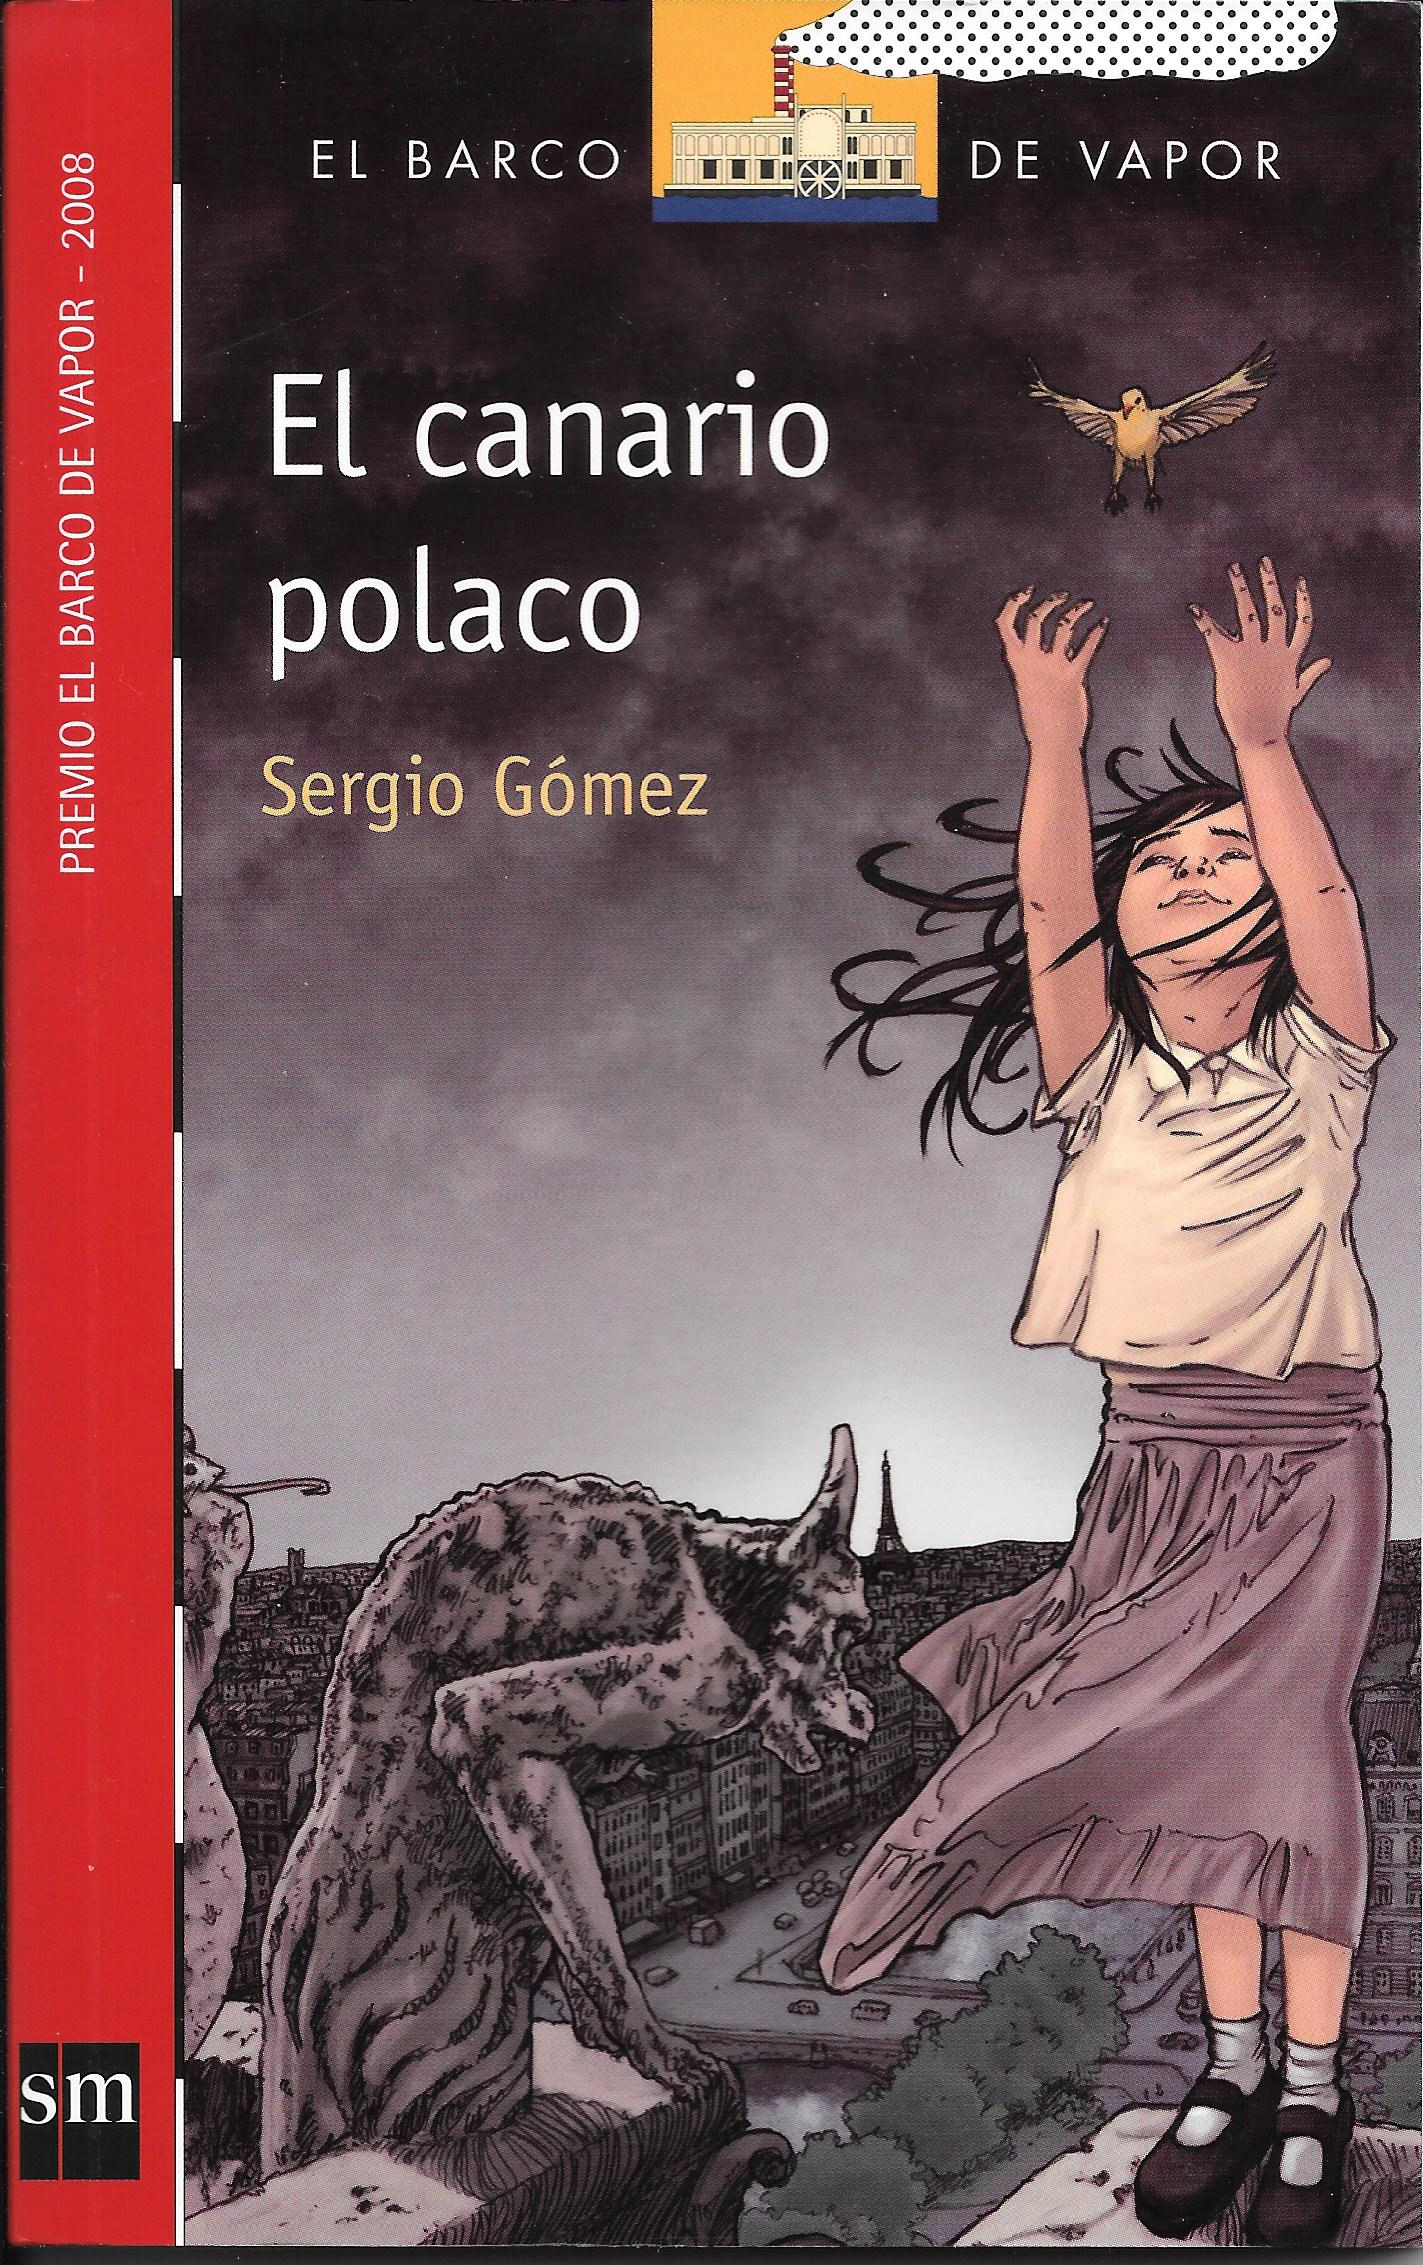 El canario polaco (The polish canary)